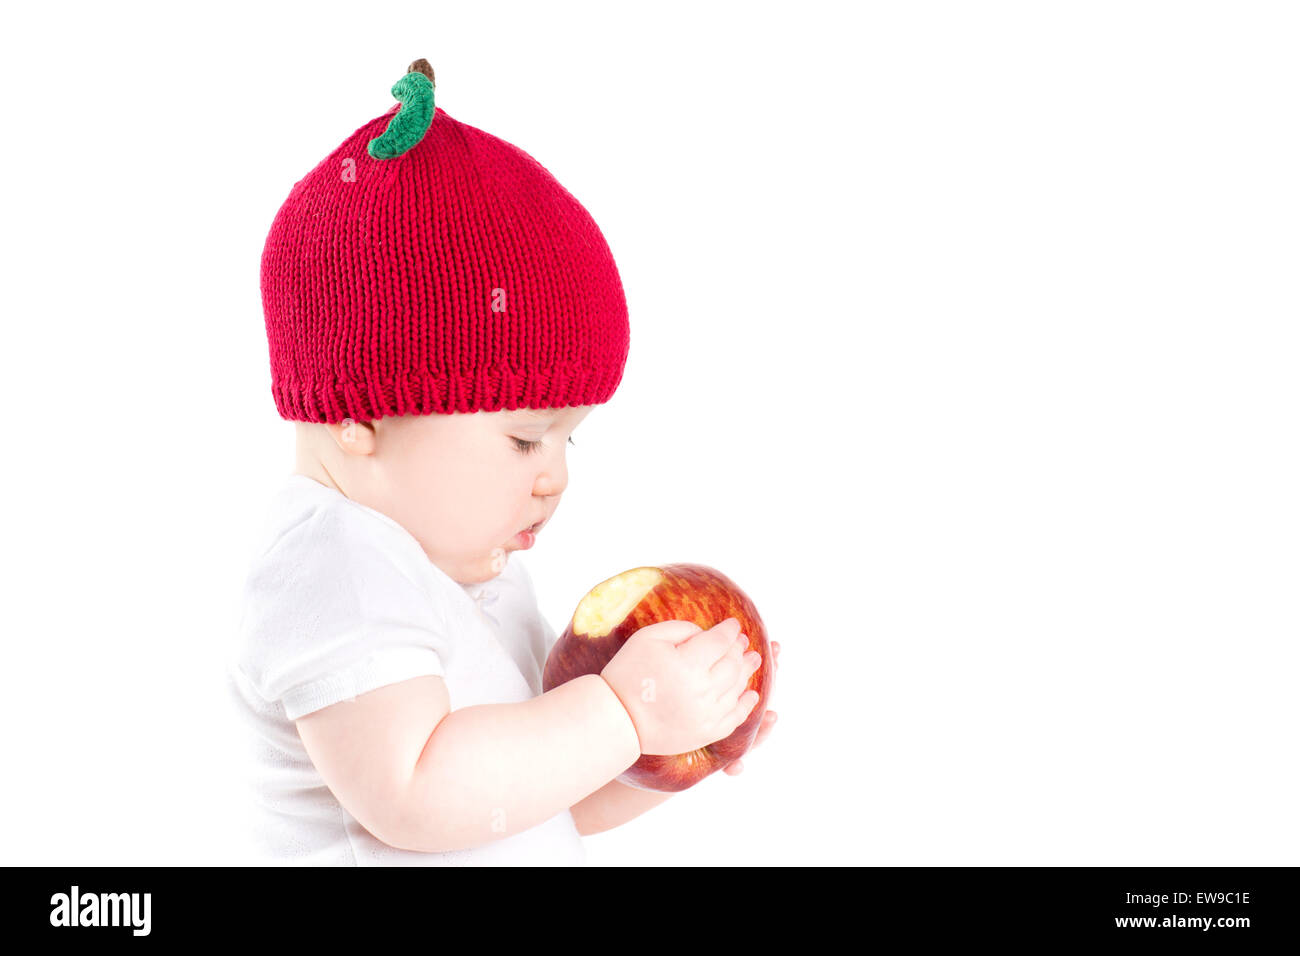 Funny little baby in an apple hat holding a big red apple, isolated on white - Stock Image